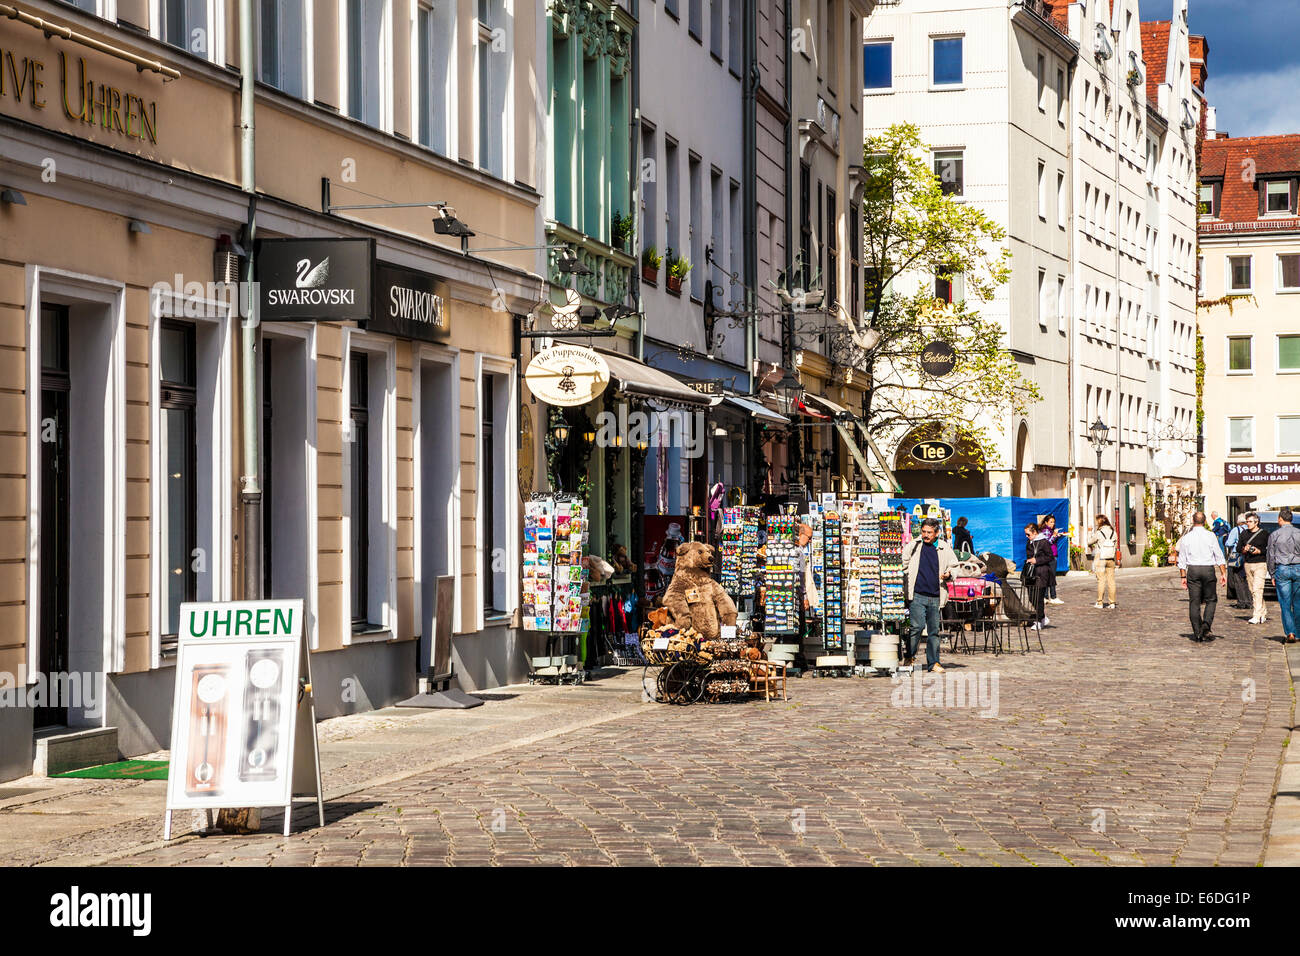 A busy street of souvenir shops and jewellers in the Nikolaiviertel or Nicholas Quarter in berlin. - Stock Image